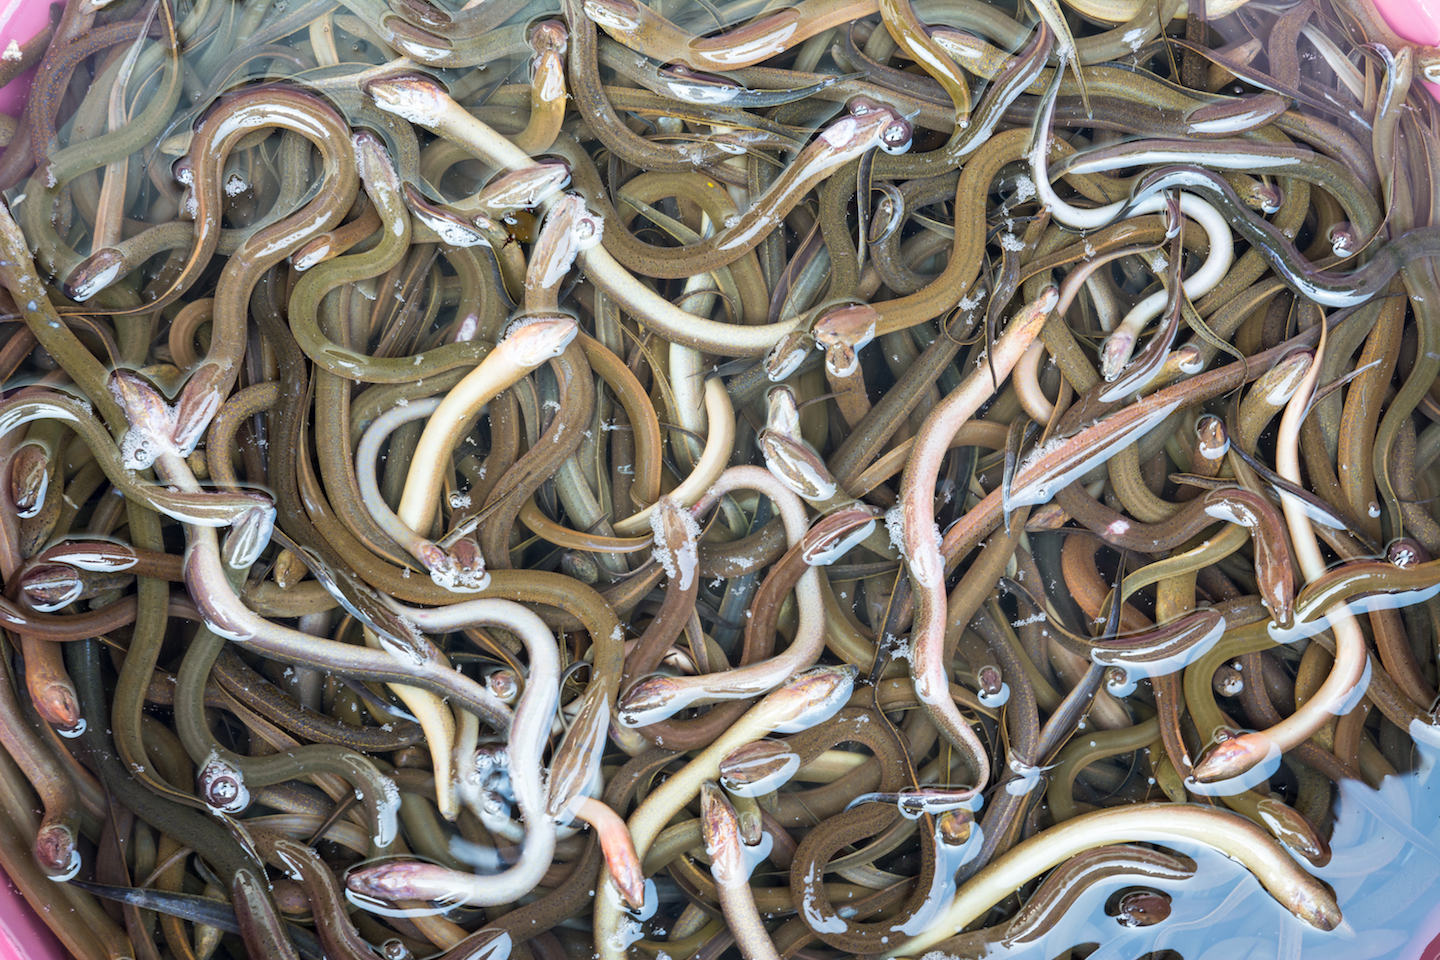 A huge increase in the value of American eels has given rise to a lucrative black market, prompting a massive federal investigation.